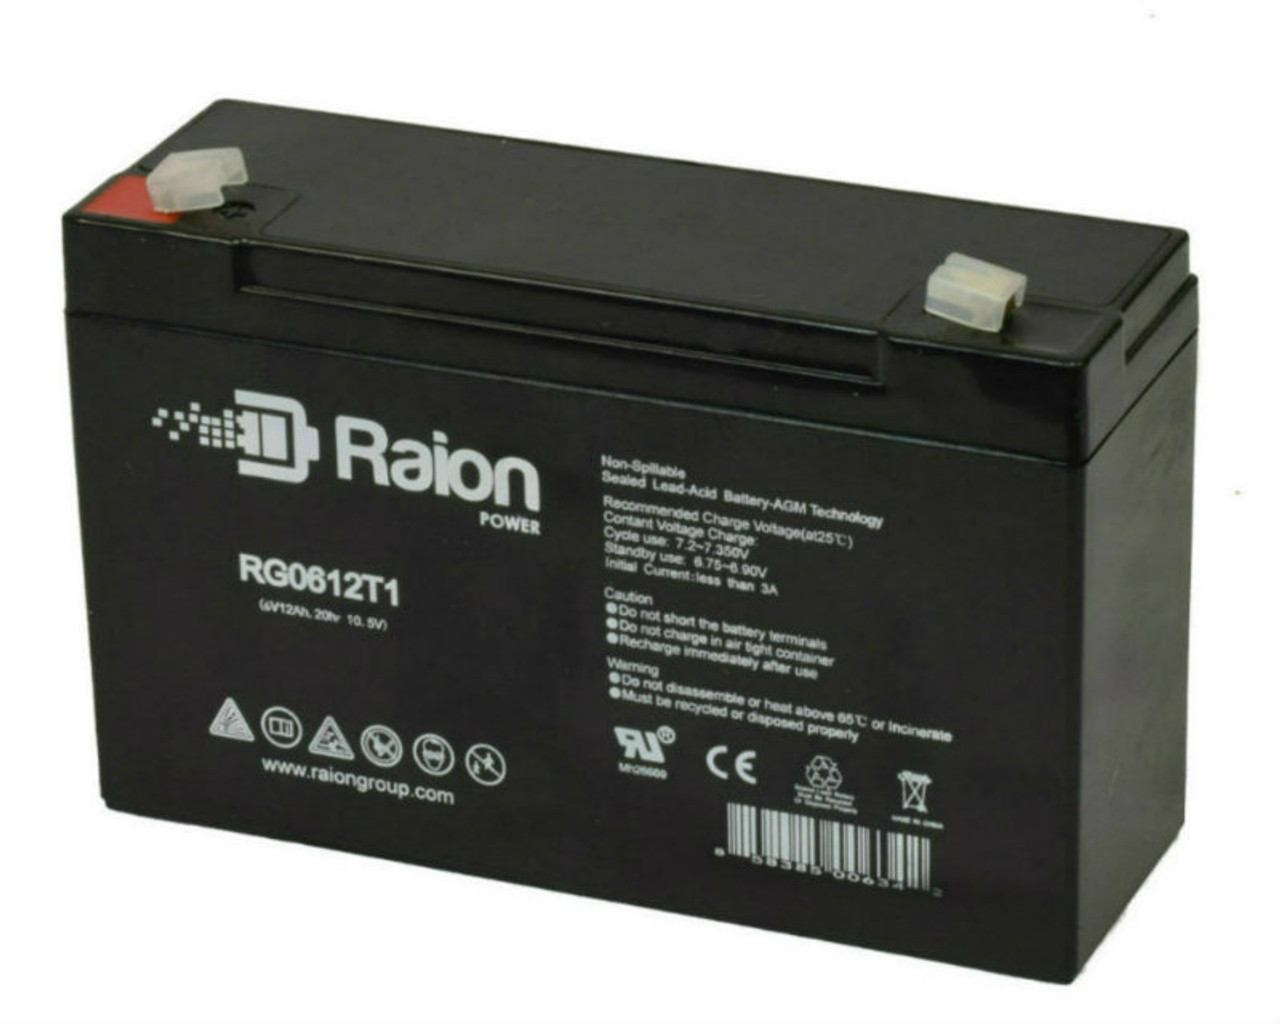 Raion Power RG06120T1 Replacement Battery Pack for Dynaray DR592 emergency light